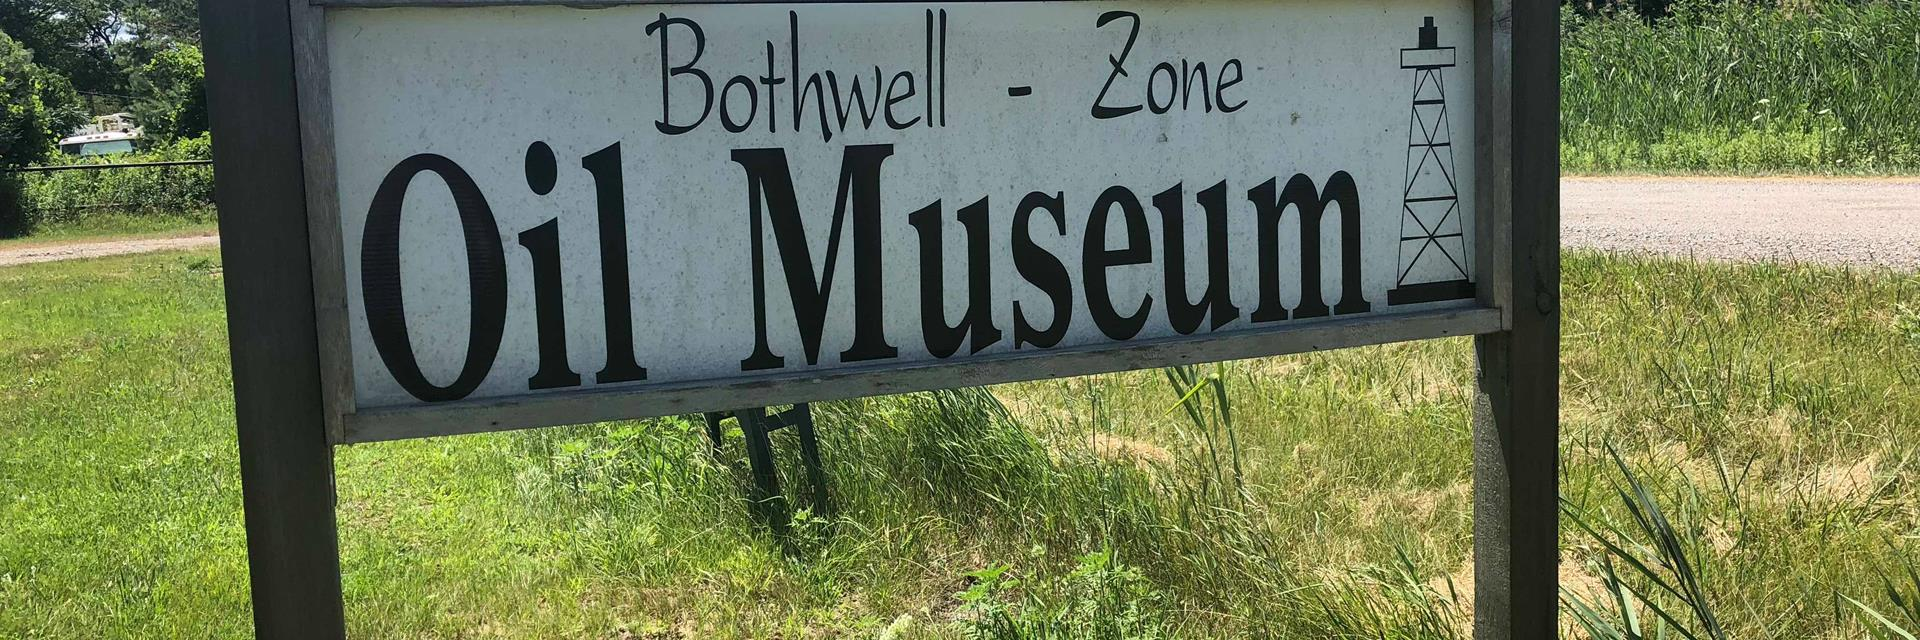 sign for the bothwell zone oil museum